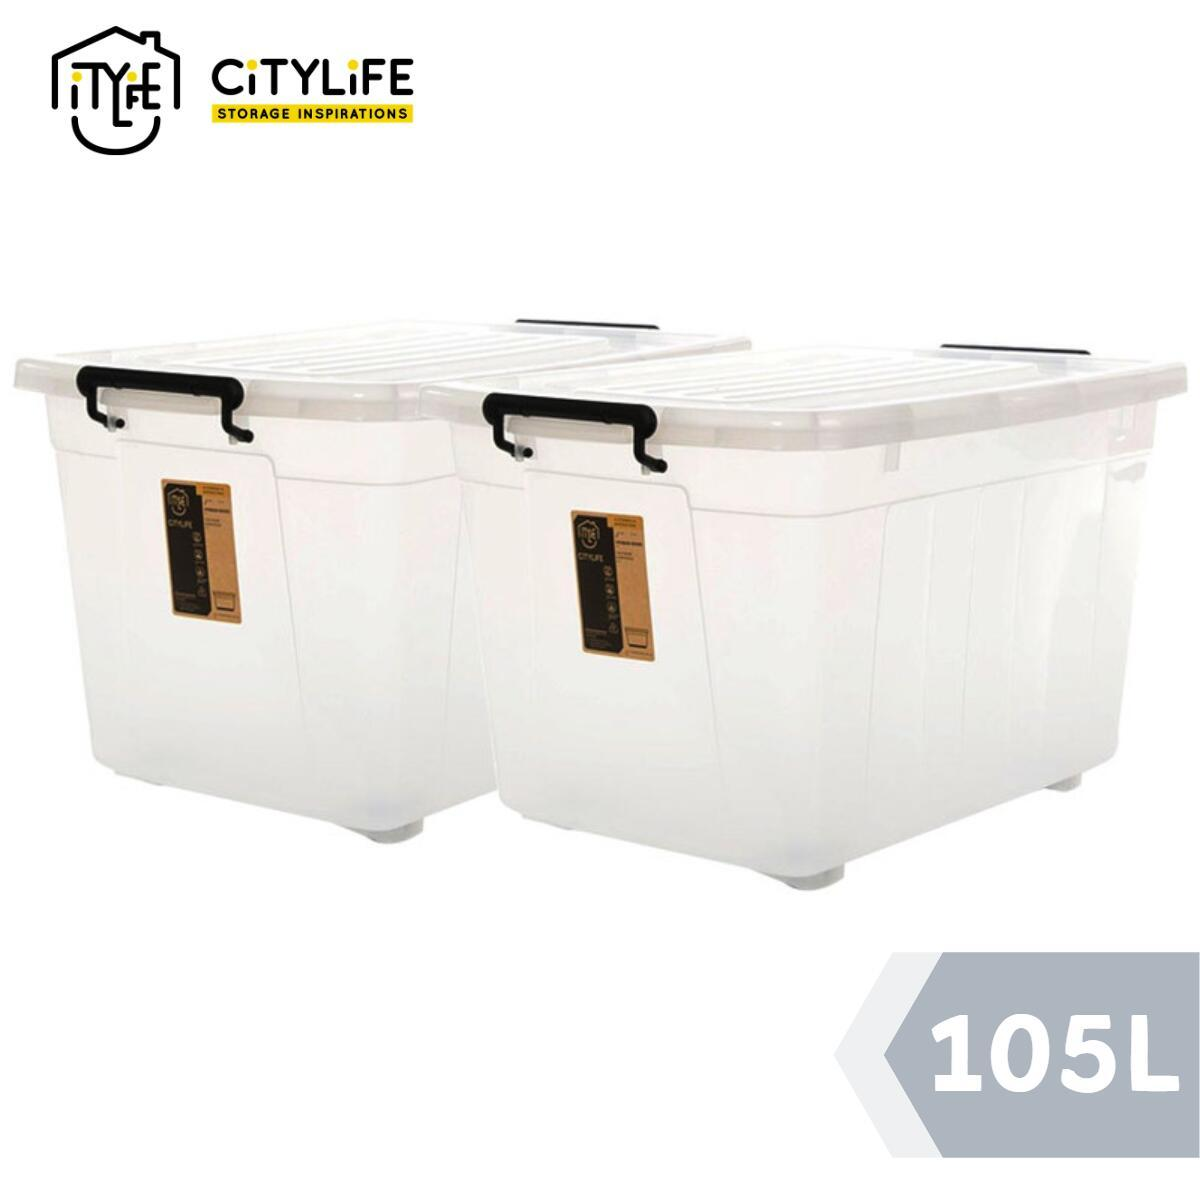 [Bundle of 2] - Citylife Large Storage Container With Wheels 105L